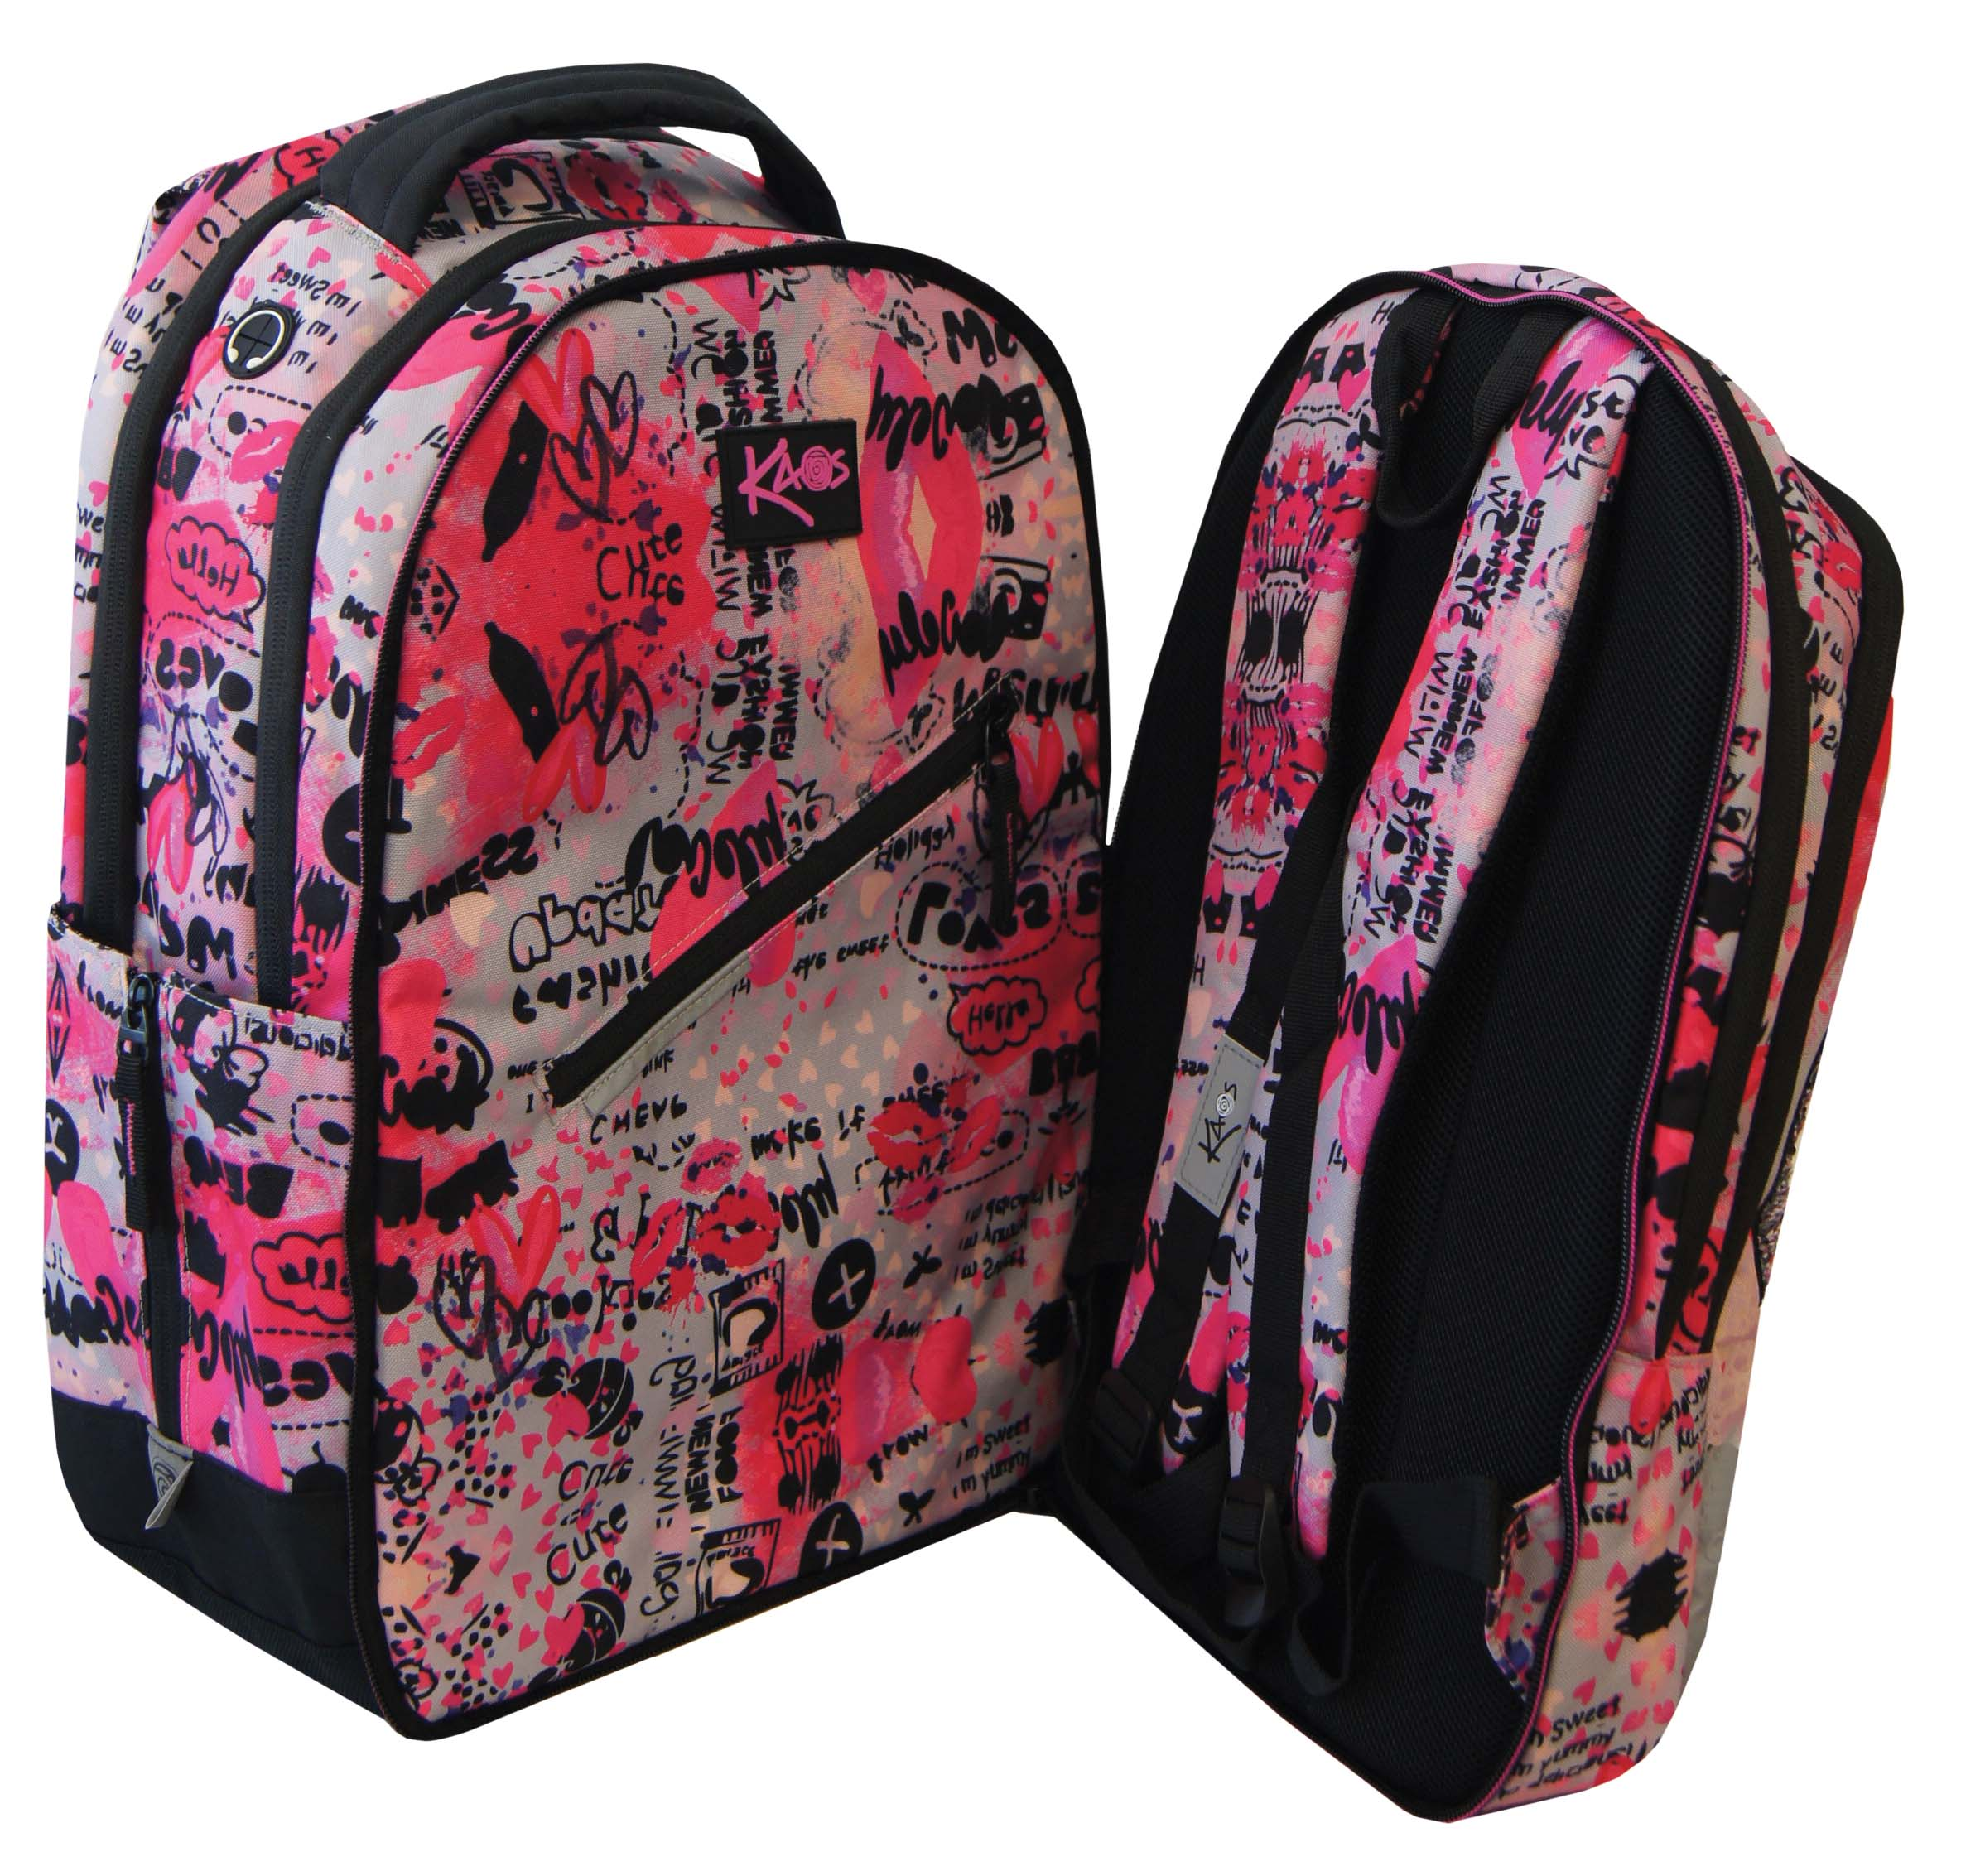 KAOS - Backpack 2-in-1 (36L) - Lovely Love (44881)